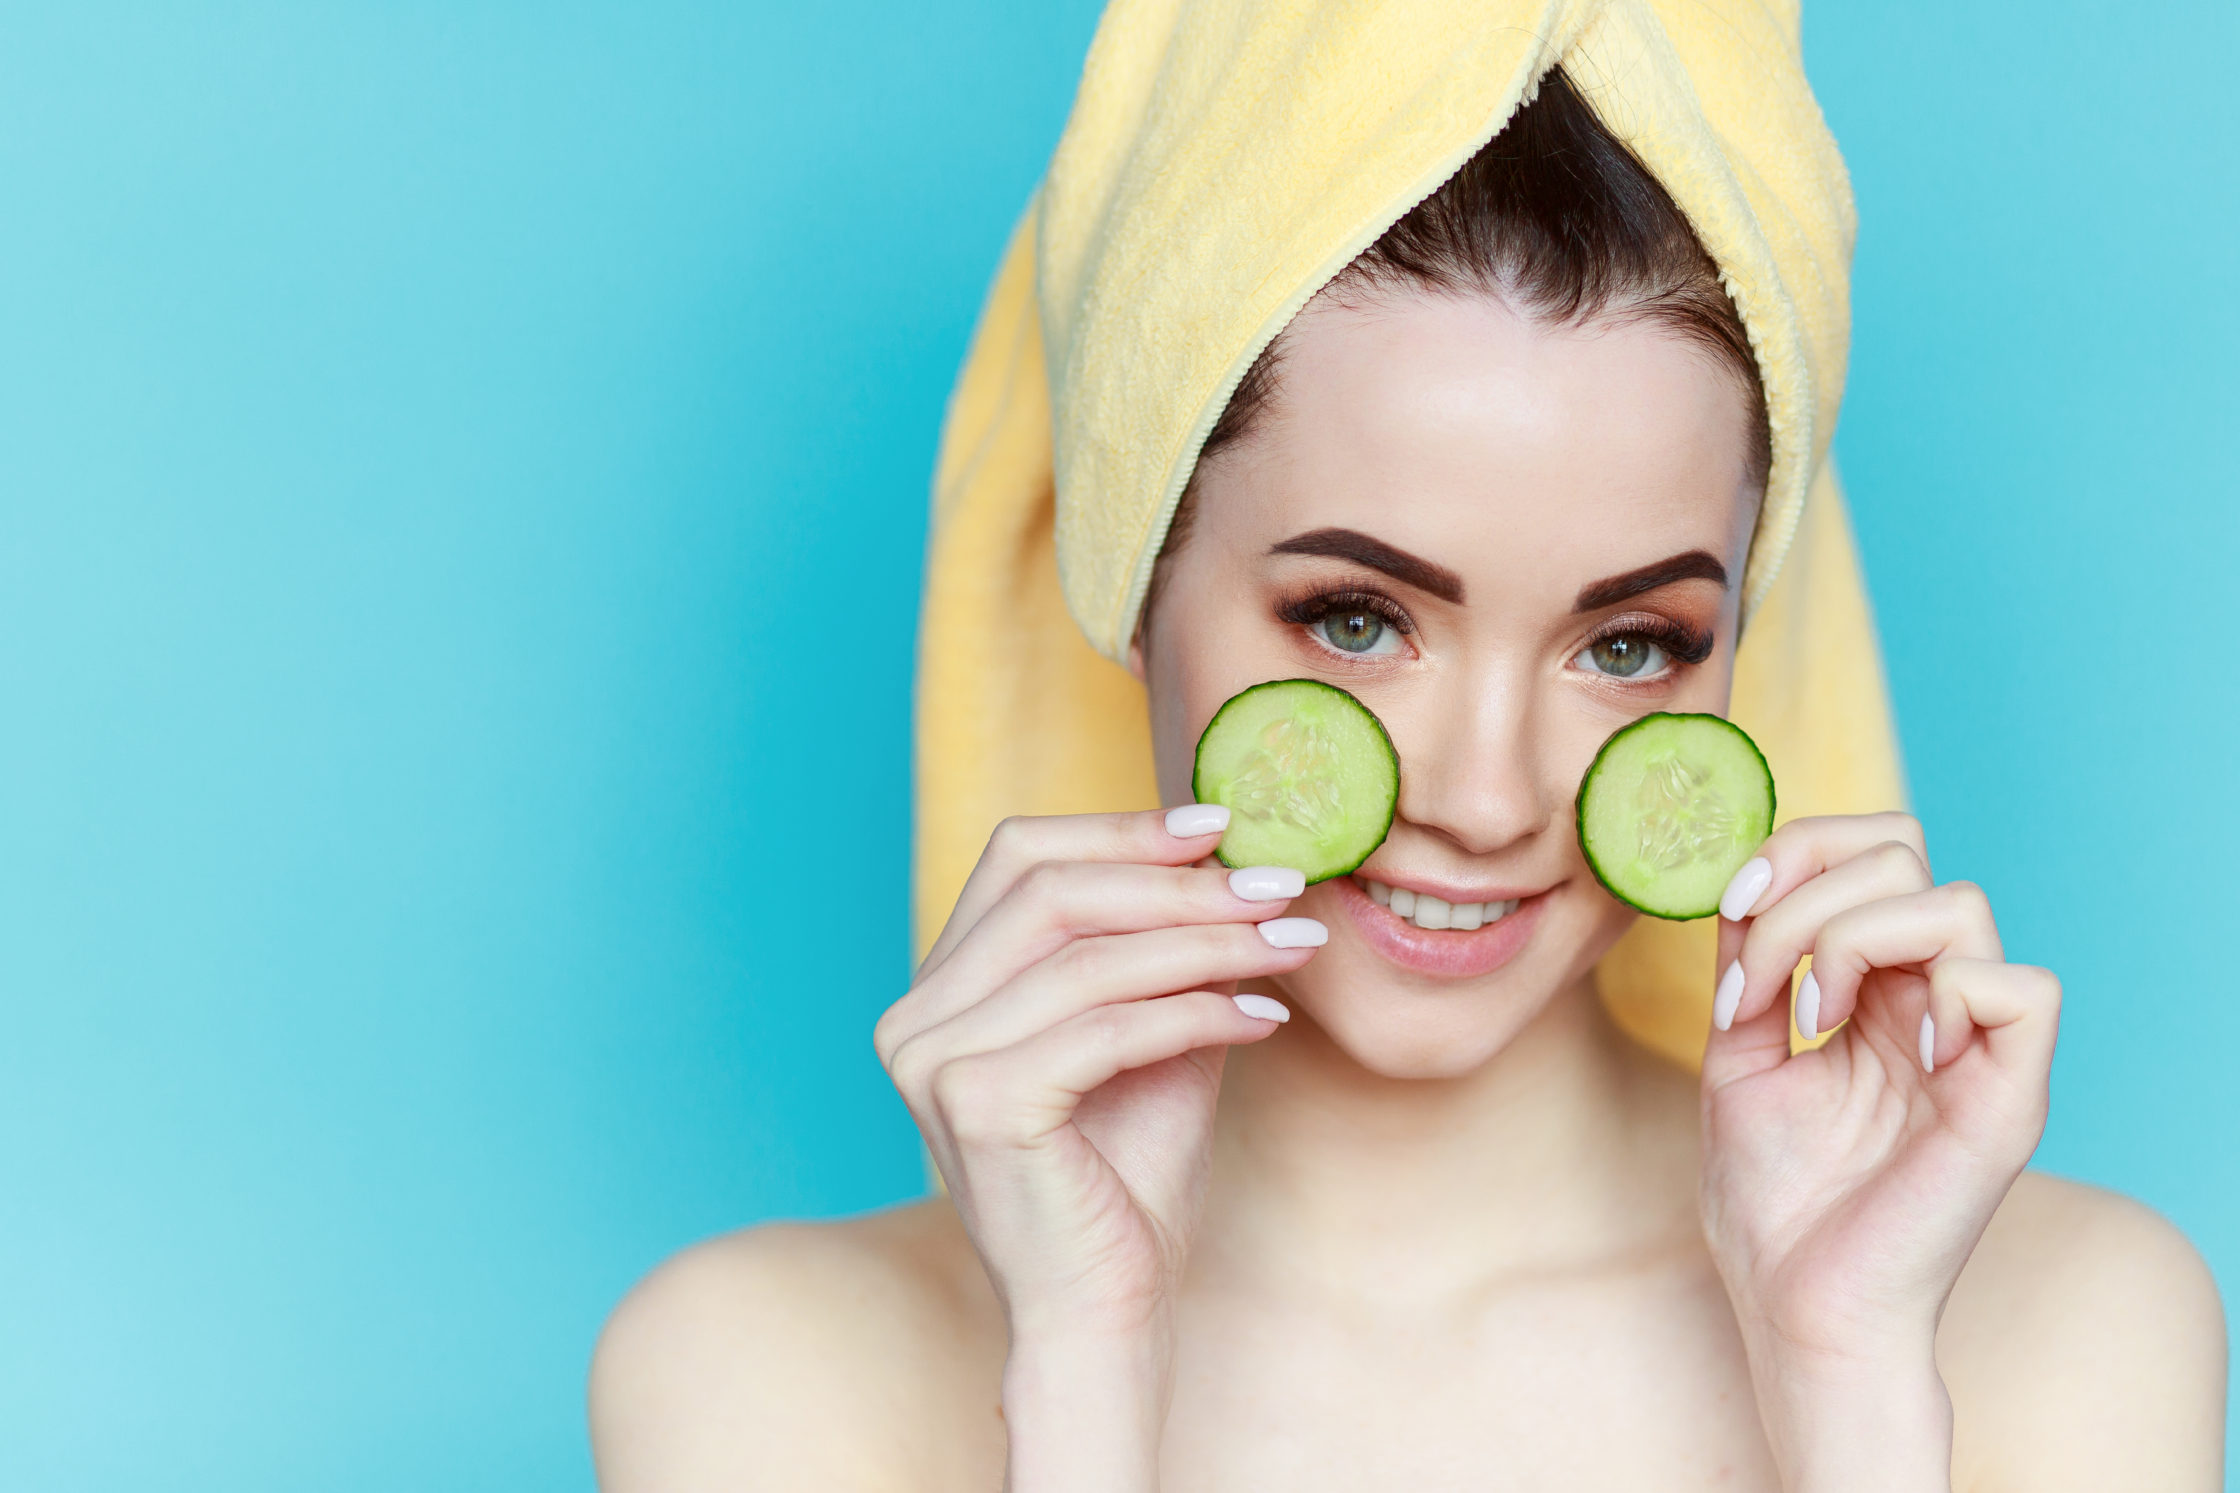 portrait-young-beautiful-woman-with-healthy-skin-holds-two-piece-cucumber-near-face